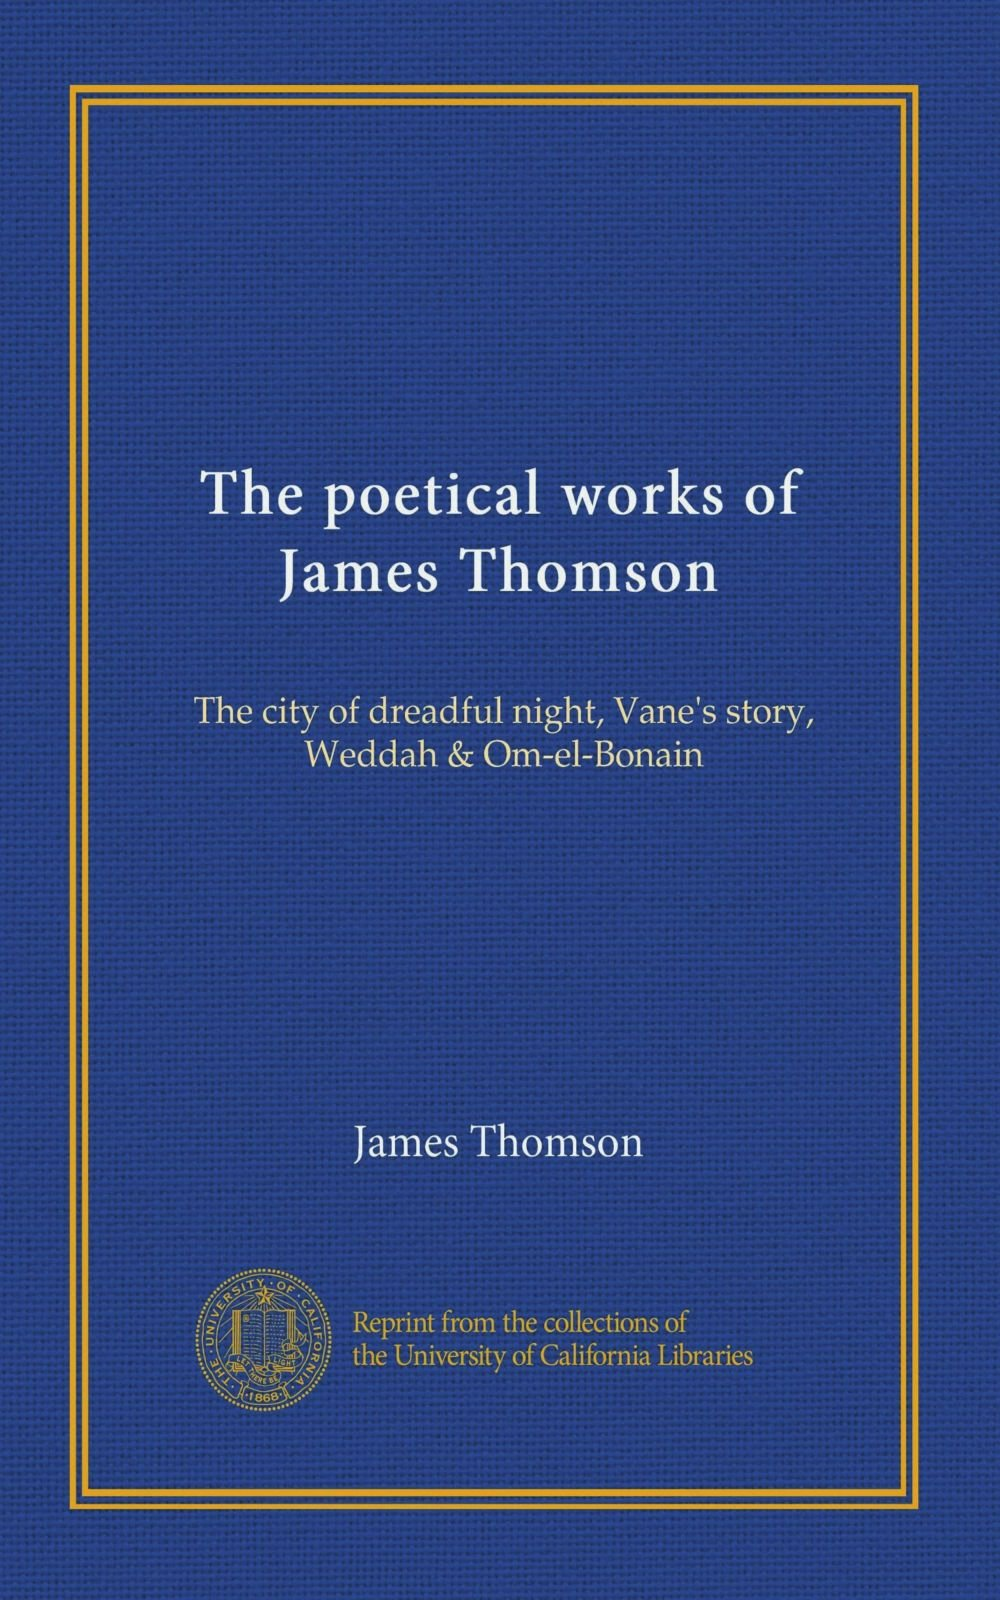 The poetical works of James Thomson: The city of dreadful night, Vane's story, Weddah & Om-el-Bonain PDF